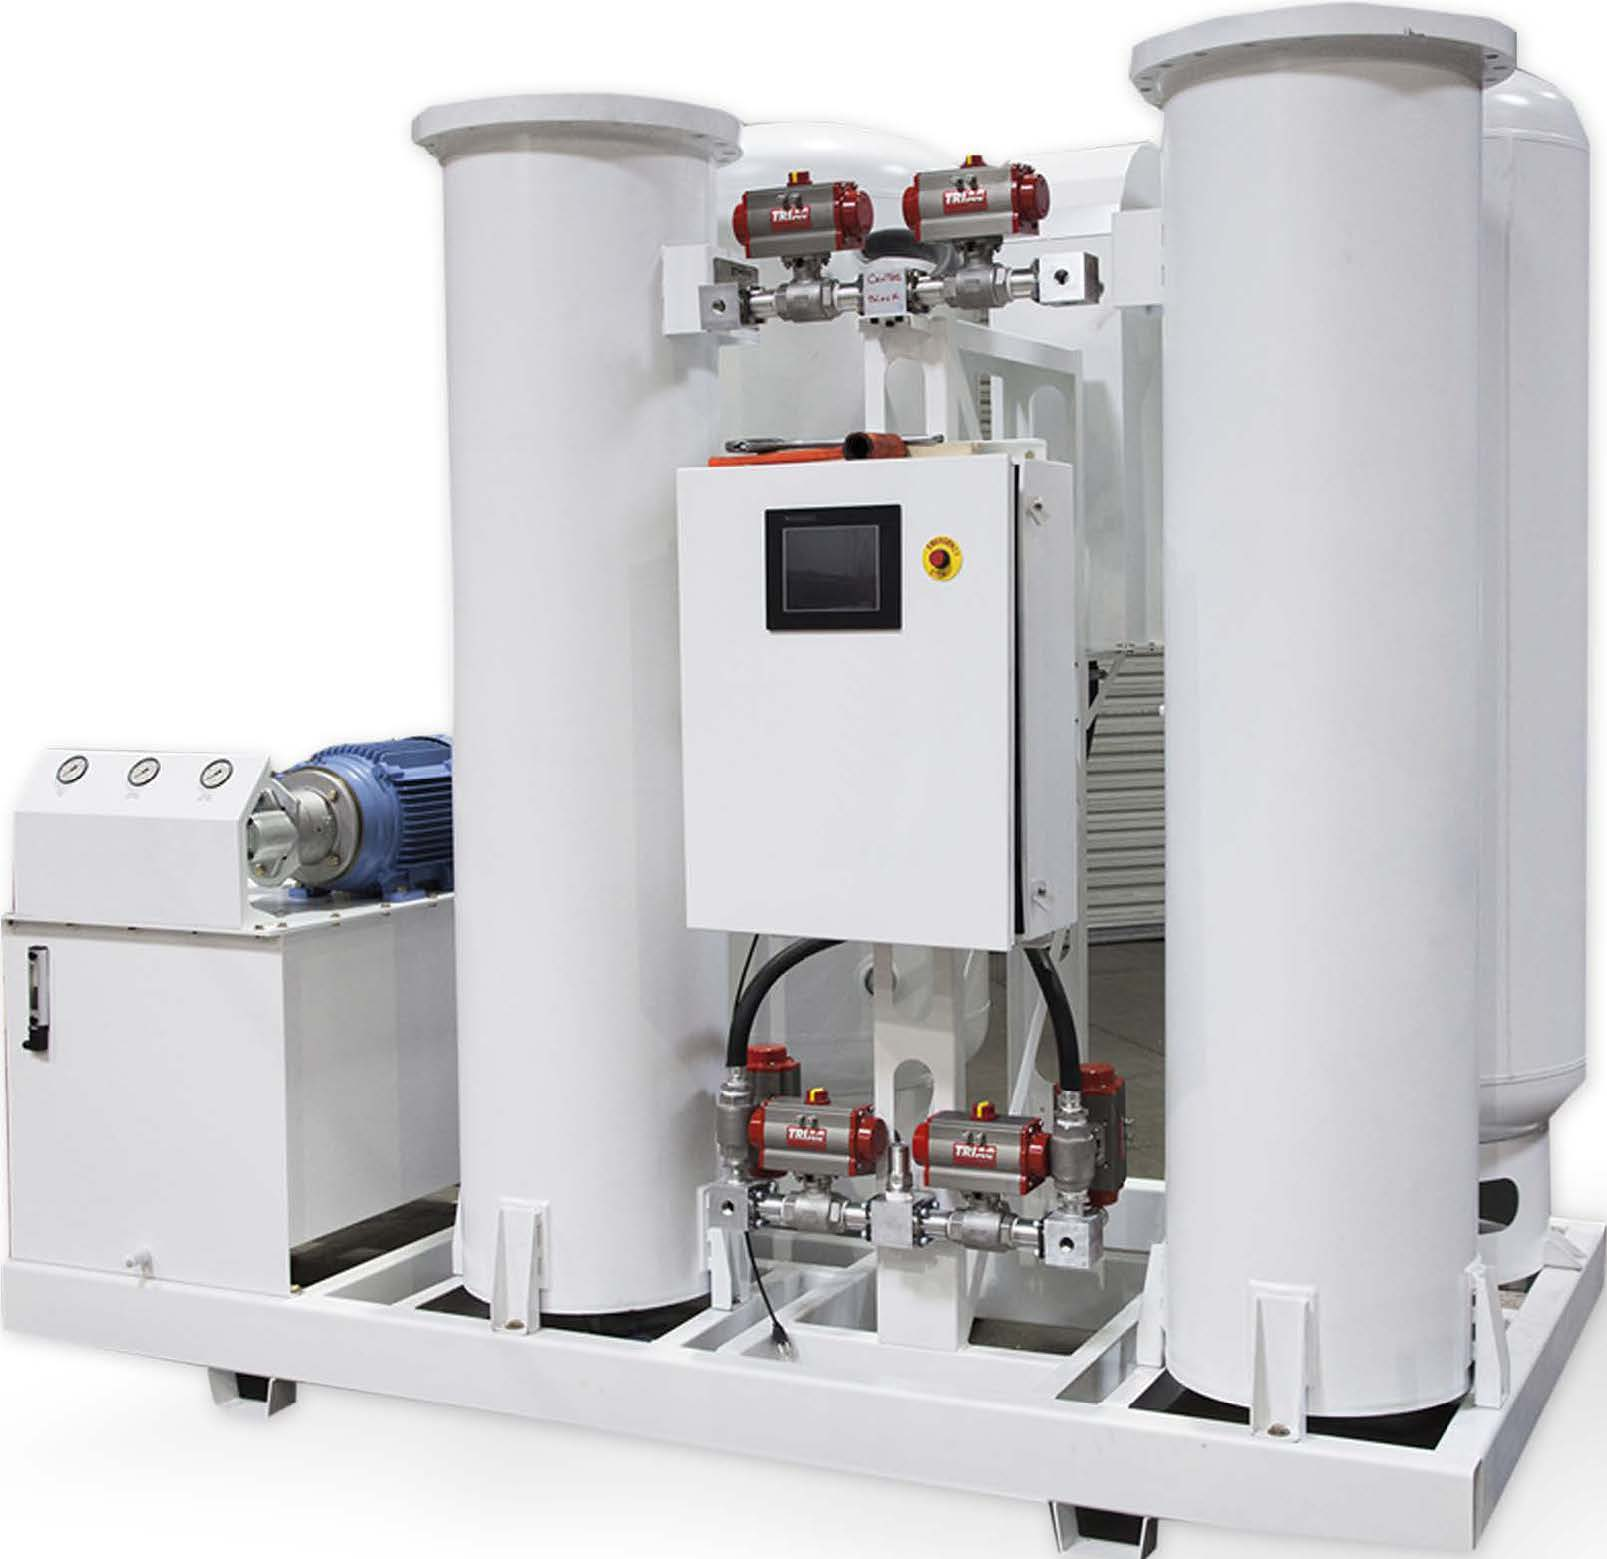 Nitrogen Generators Produce Your Own And Cut Down 80 In